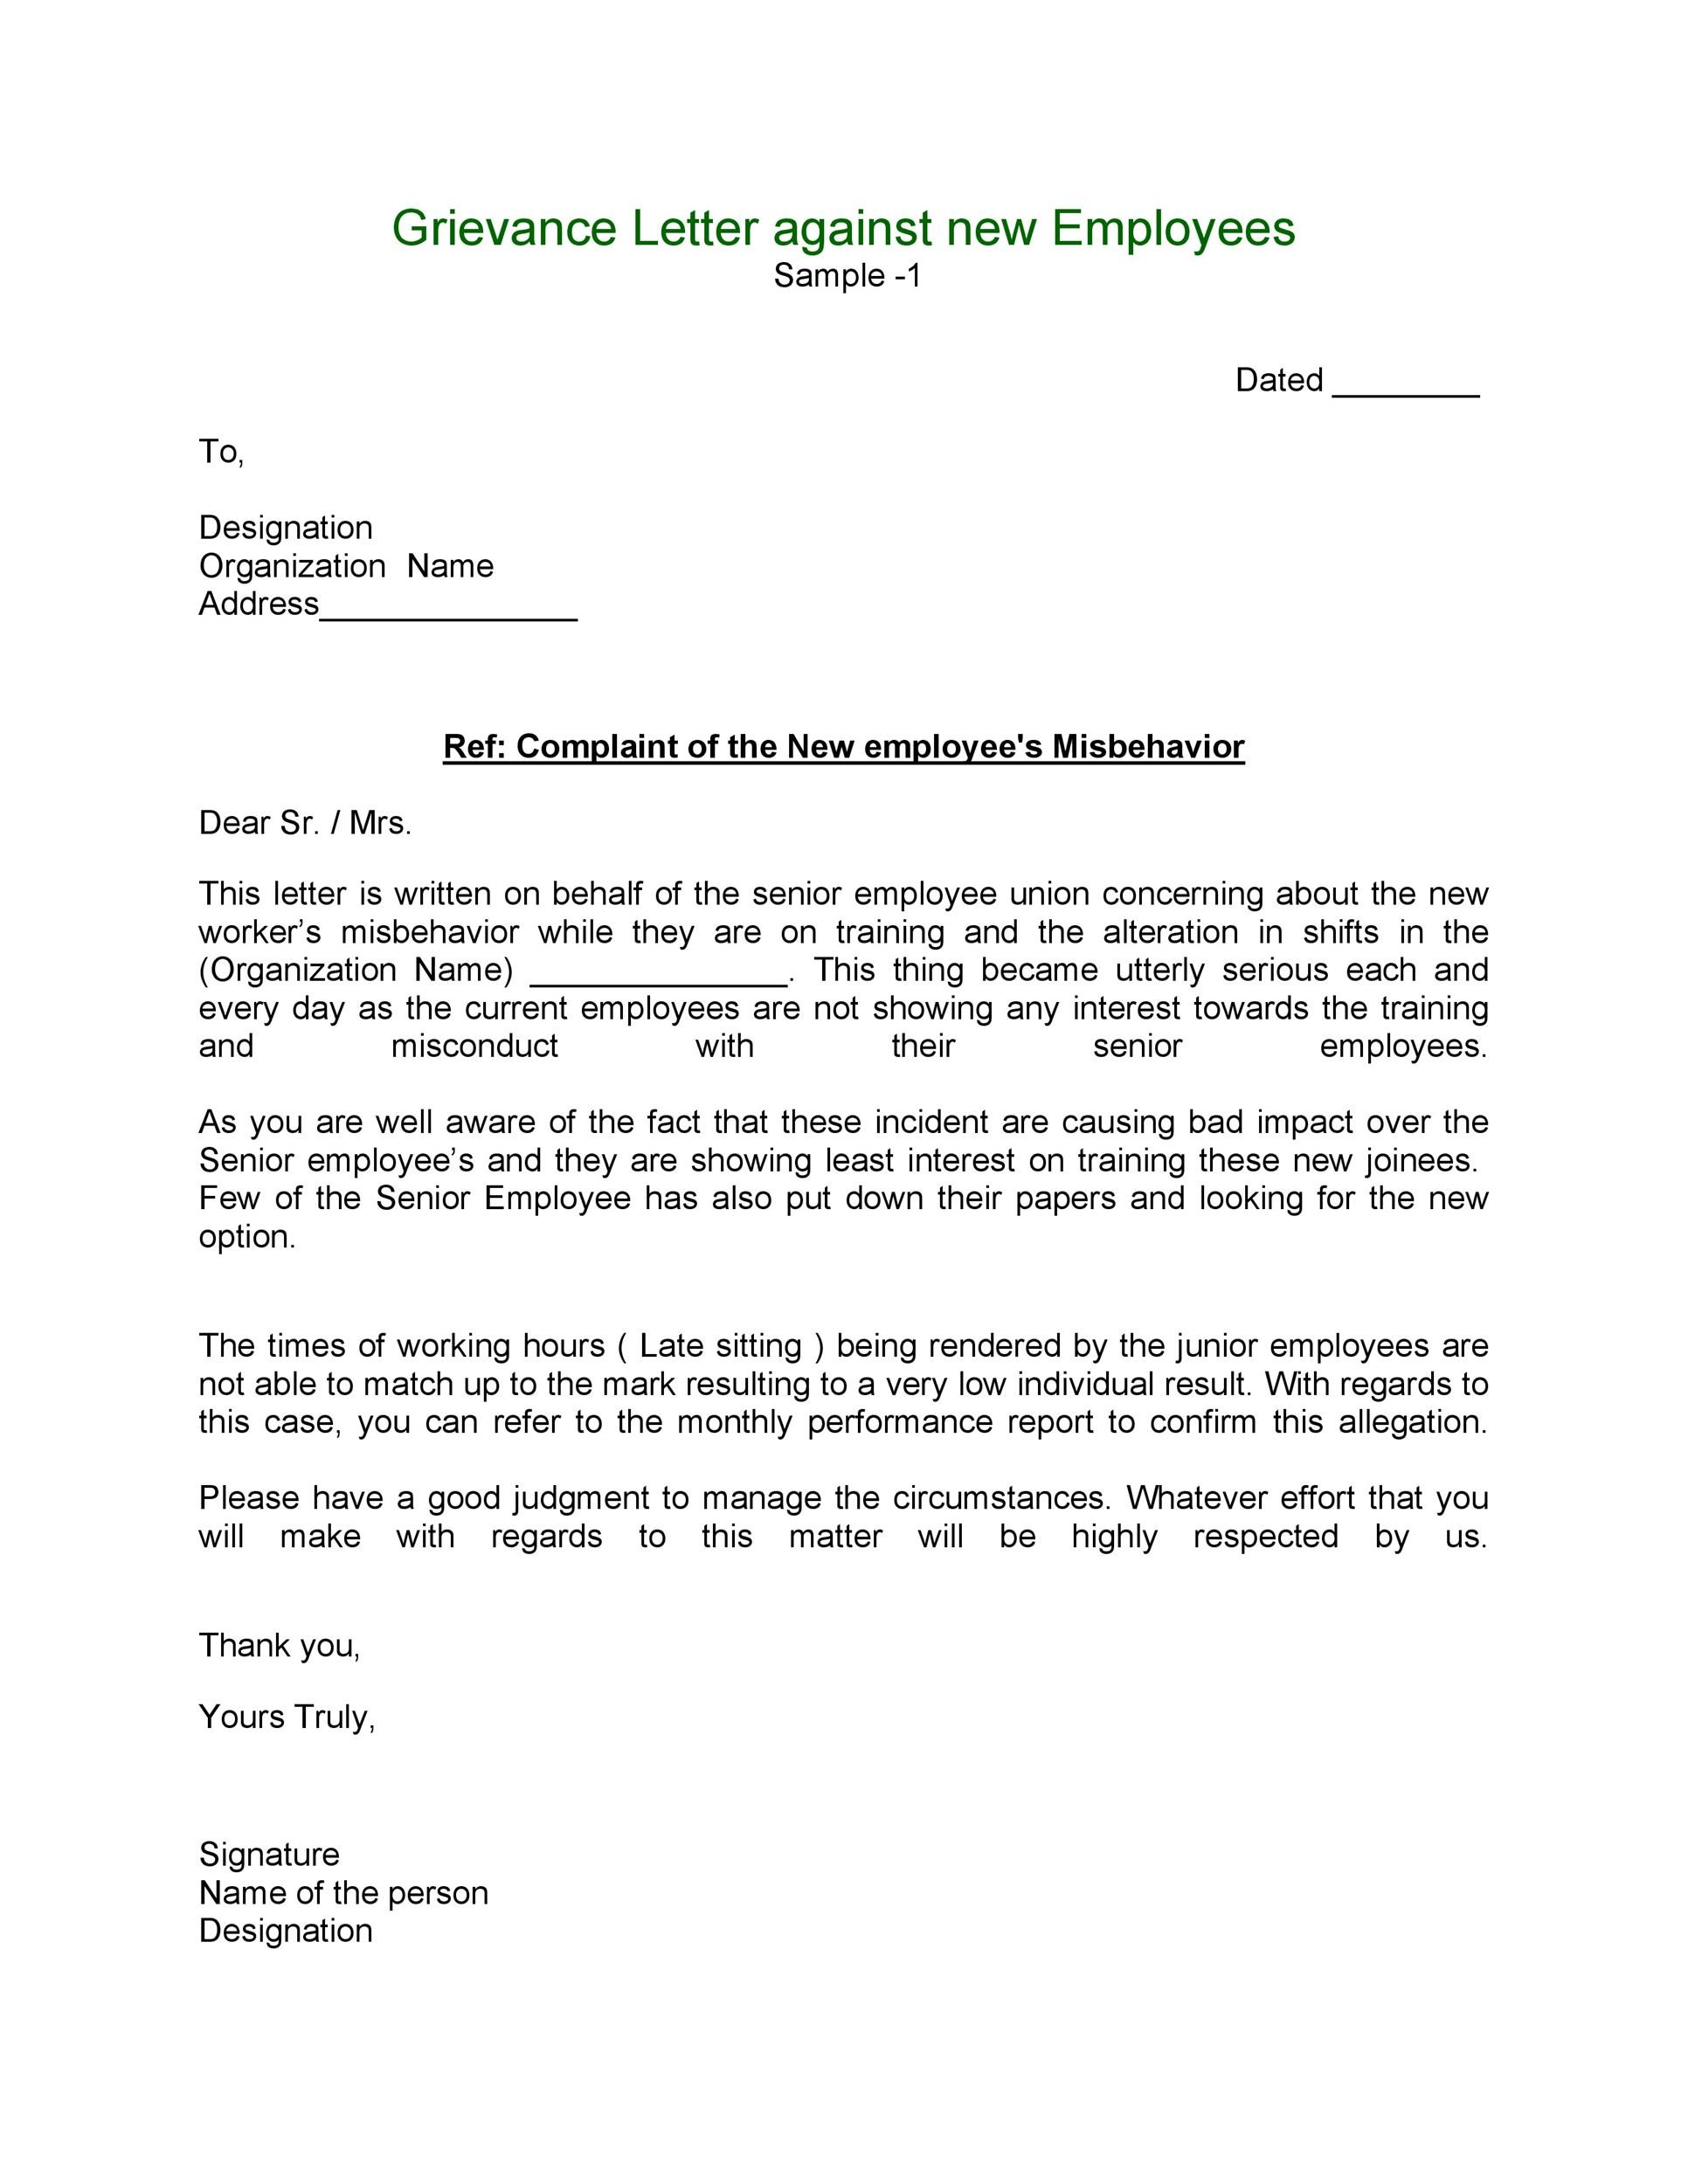 Free grievance letter 01